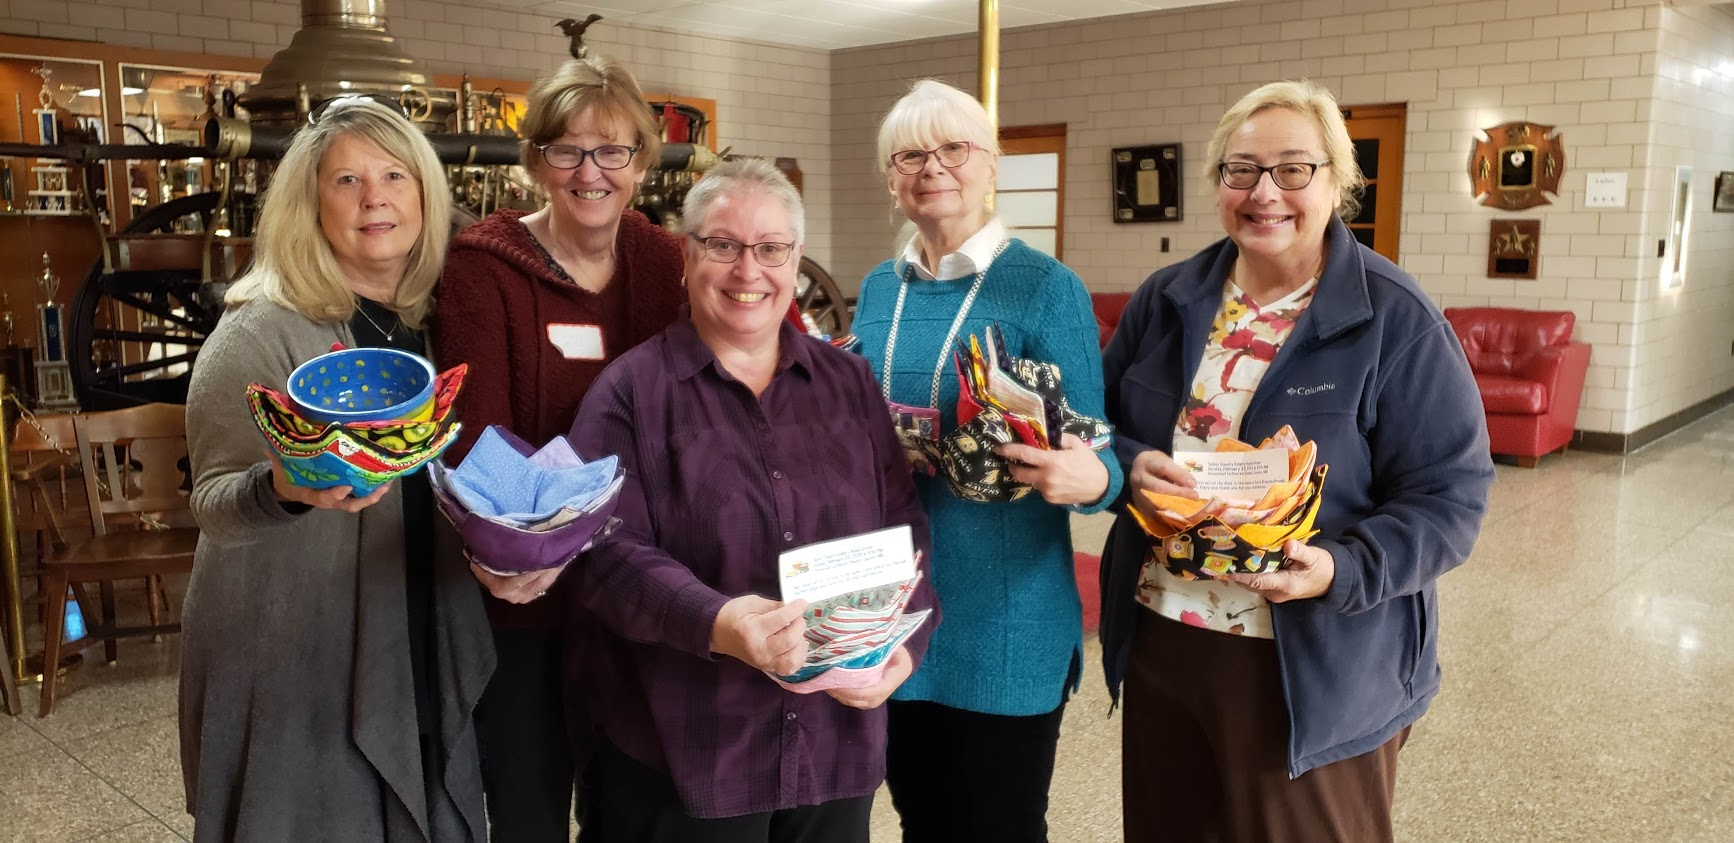 a group of middle aged women holding bowls